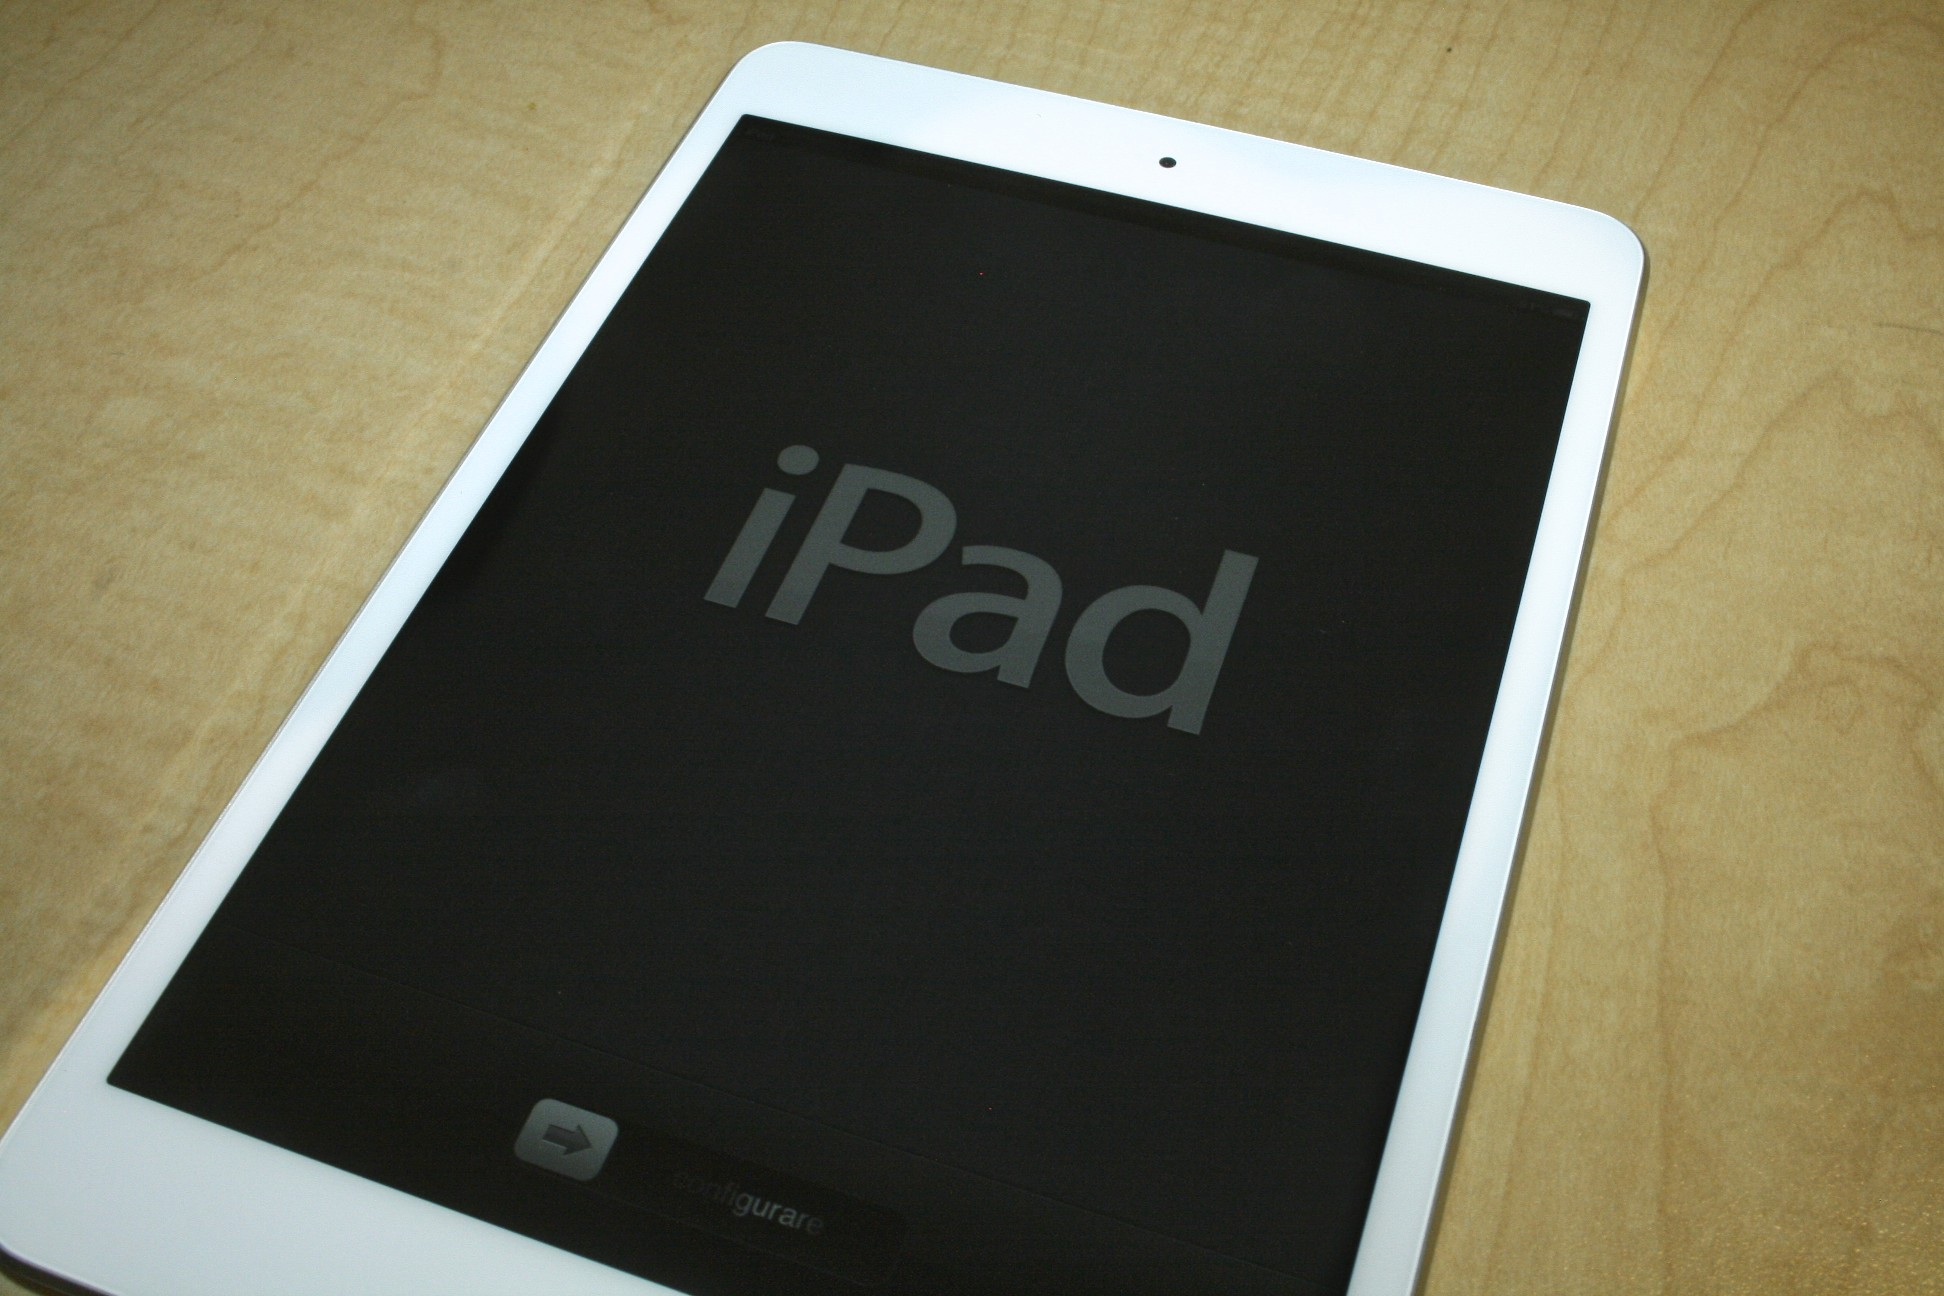 iPad Mini - The Full Unboxing and Review 1